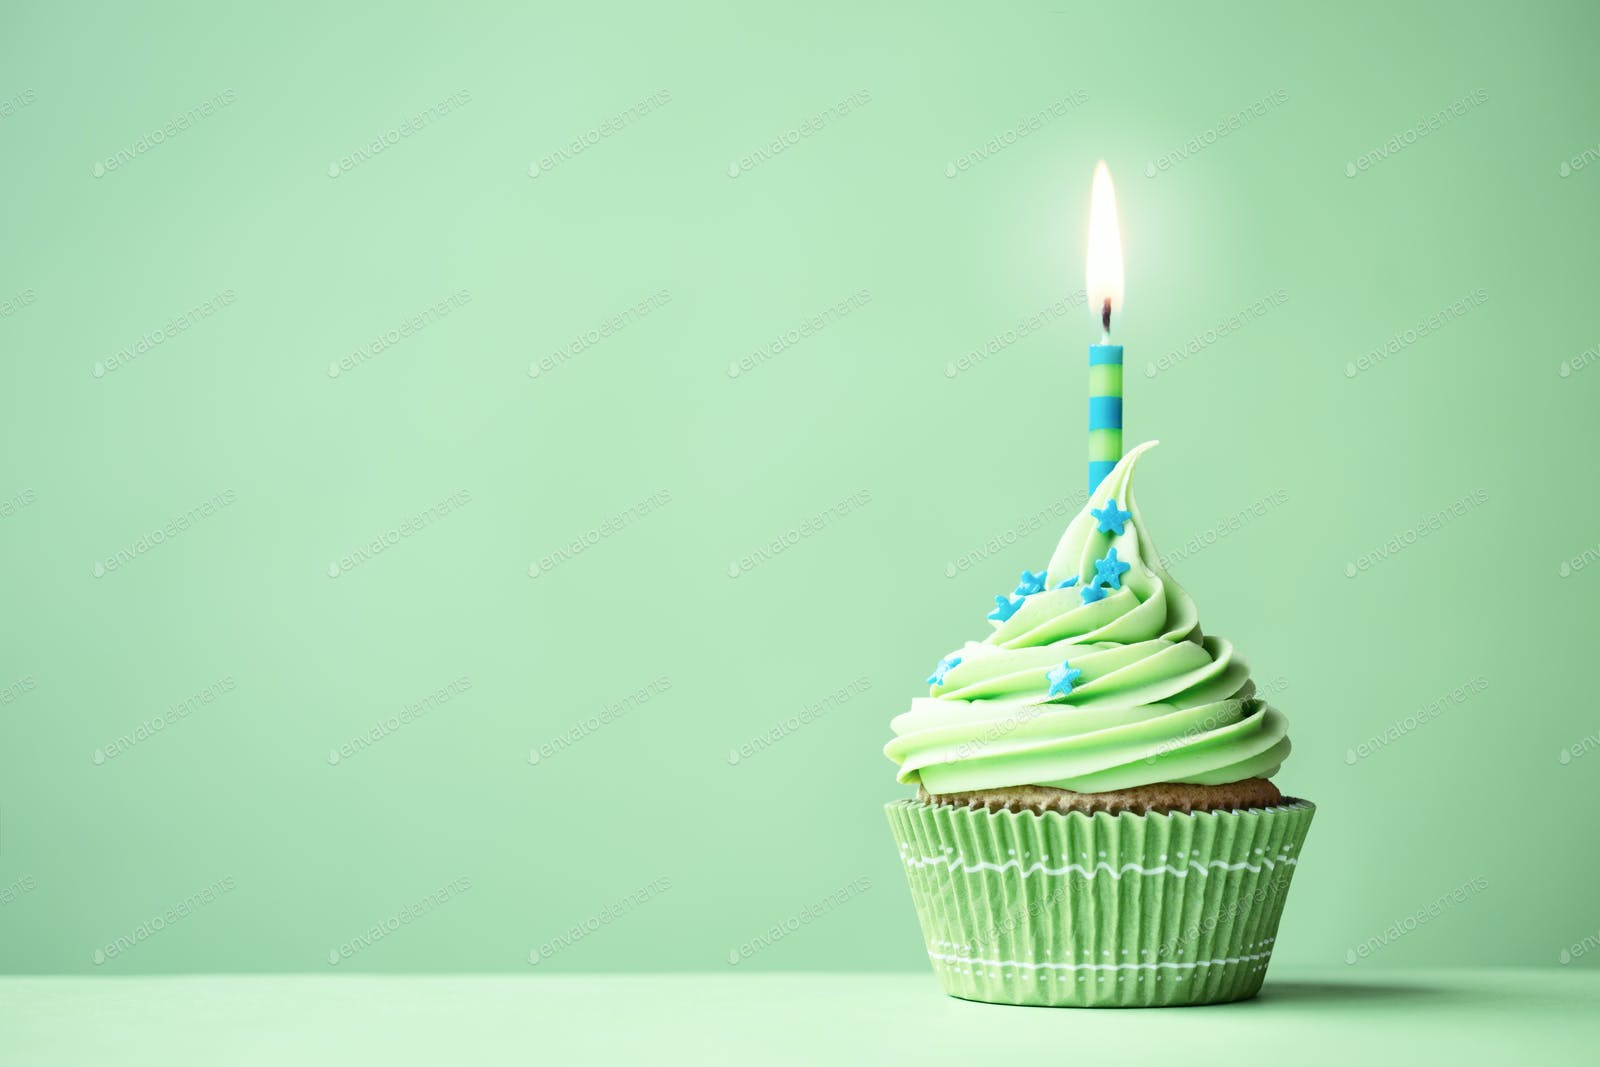 Green birthday cupcake photo by RuthBlack on Envato Elements